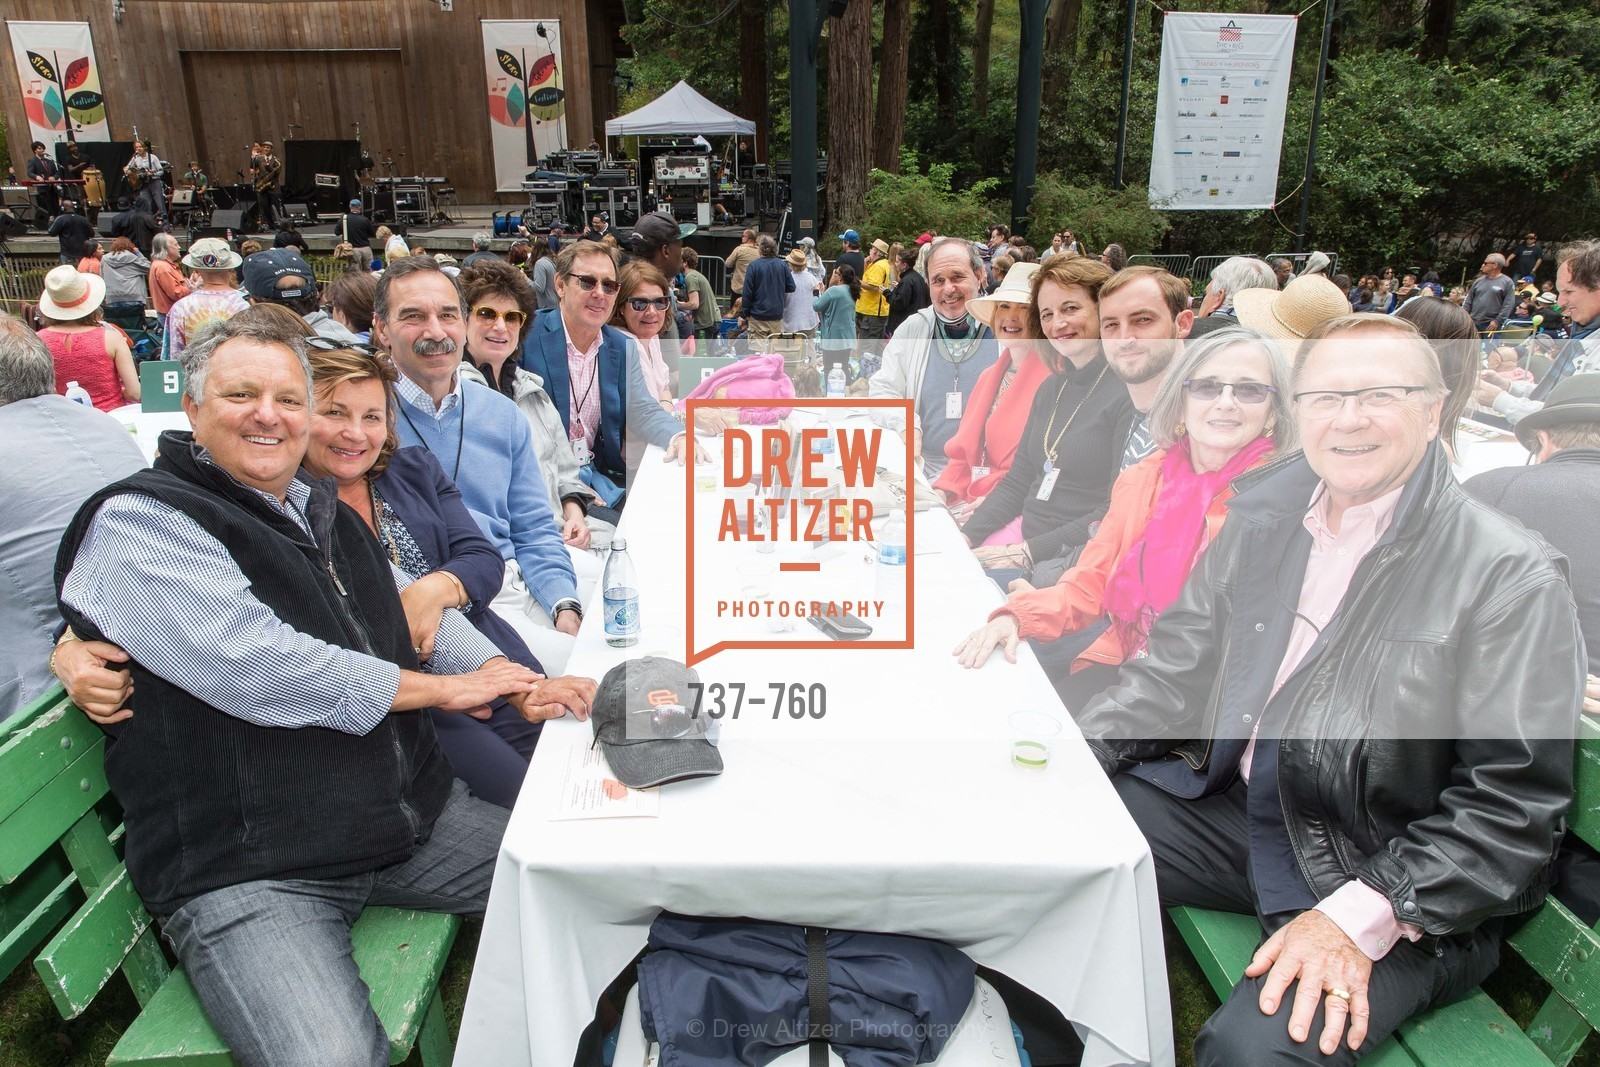 Jeff Green, Janie Green, Theo Schwabacher, Roger Gallagher, The Big Picnic! A Benefit & Concert for STERN GROVE FESTIVAL, US, June 14th, 2015,Drew Altizer, Drew Altizer Photography, full-service agency, private events, San Francisco photographer, photographer california